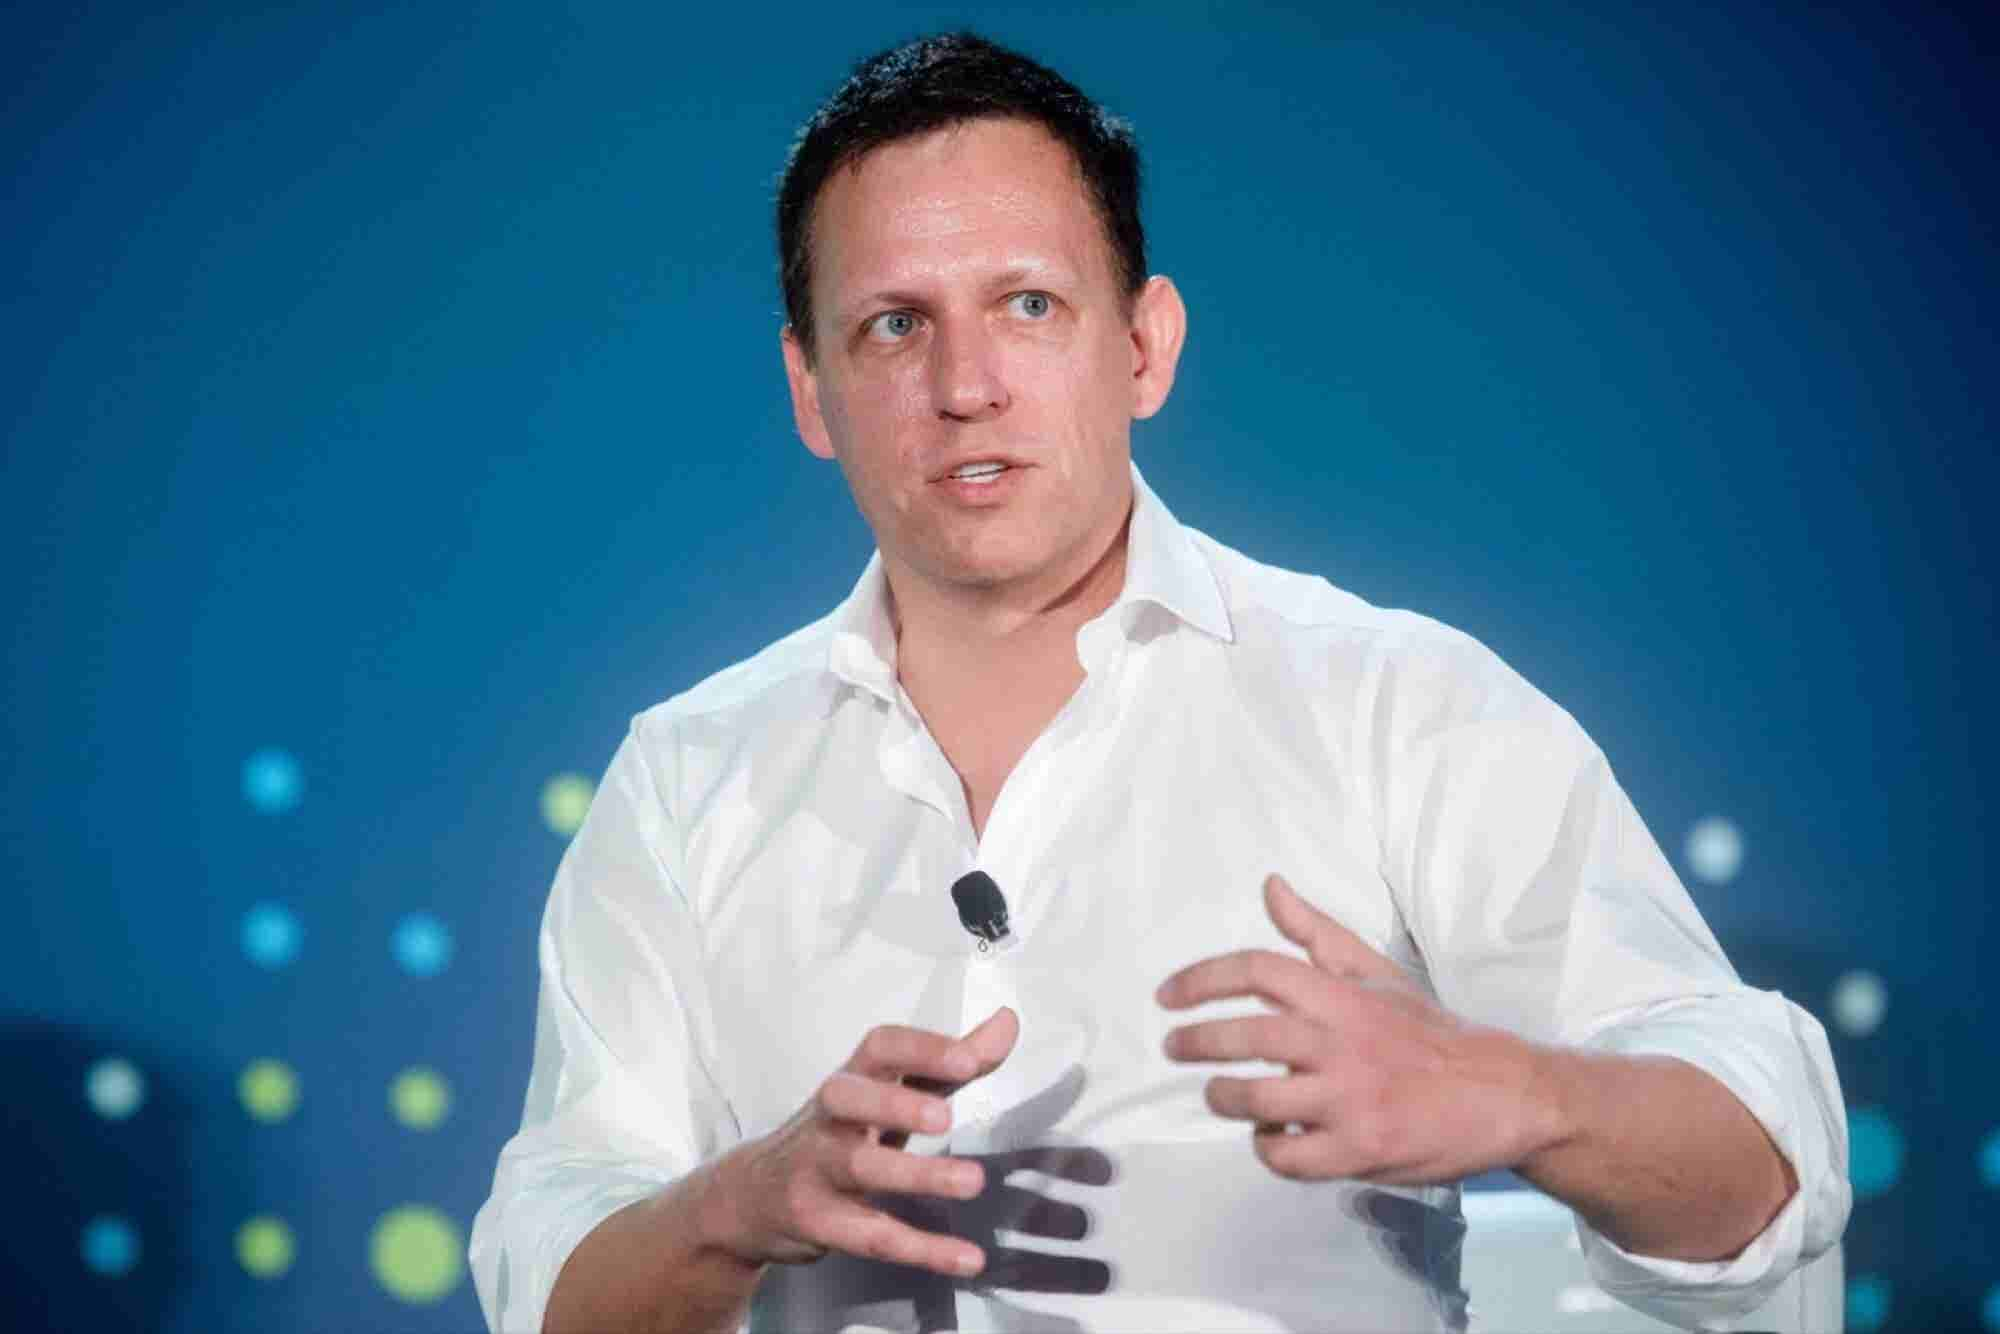 Peter Thiel on Gawker: 'If I Didn't Do Something, Nobody Would'